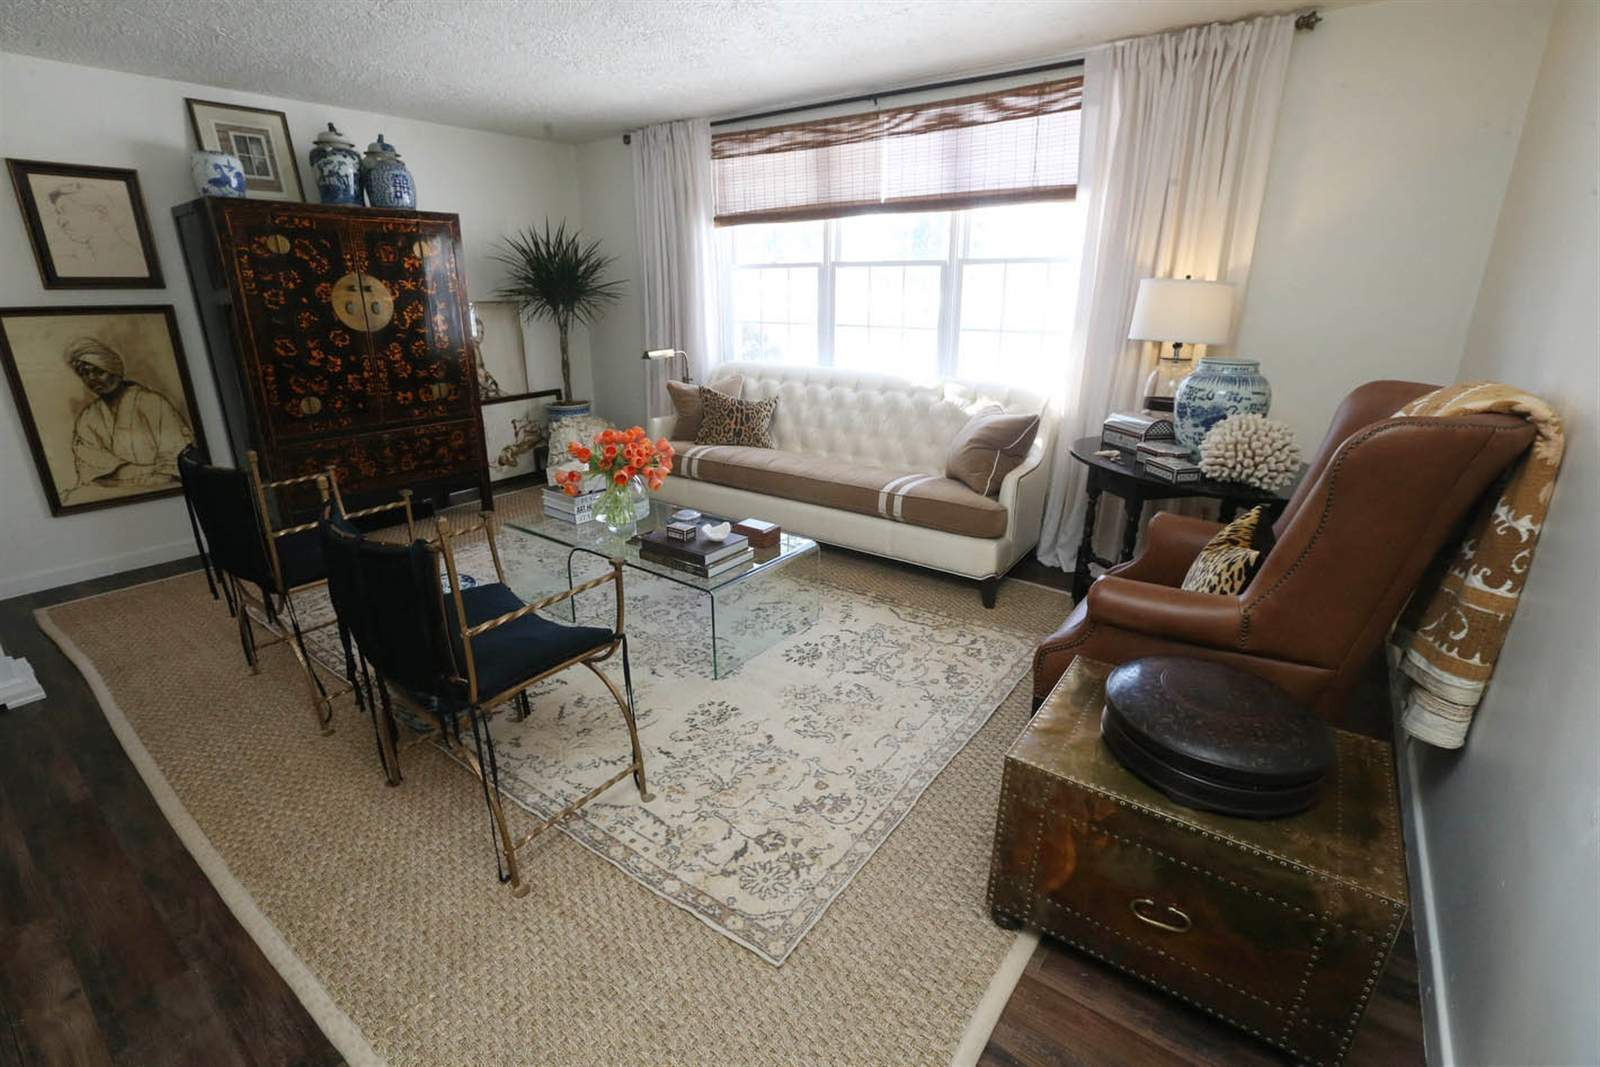 Renters are opting for higher end apartments like